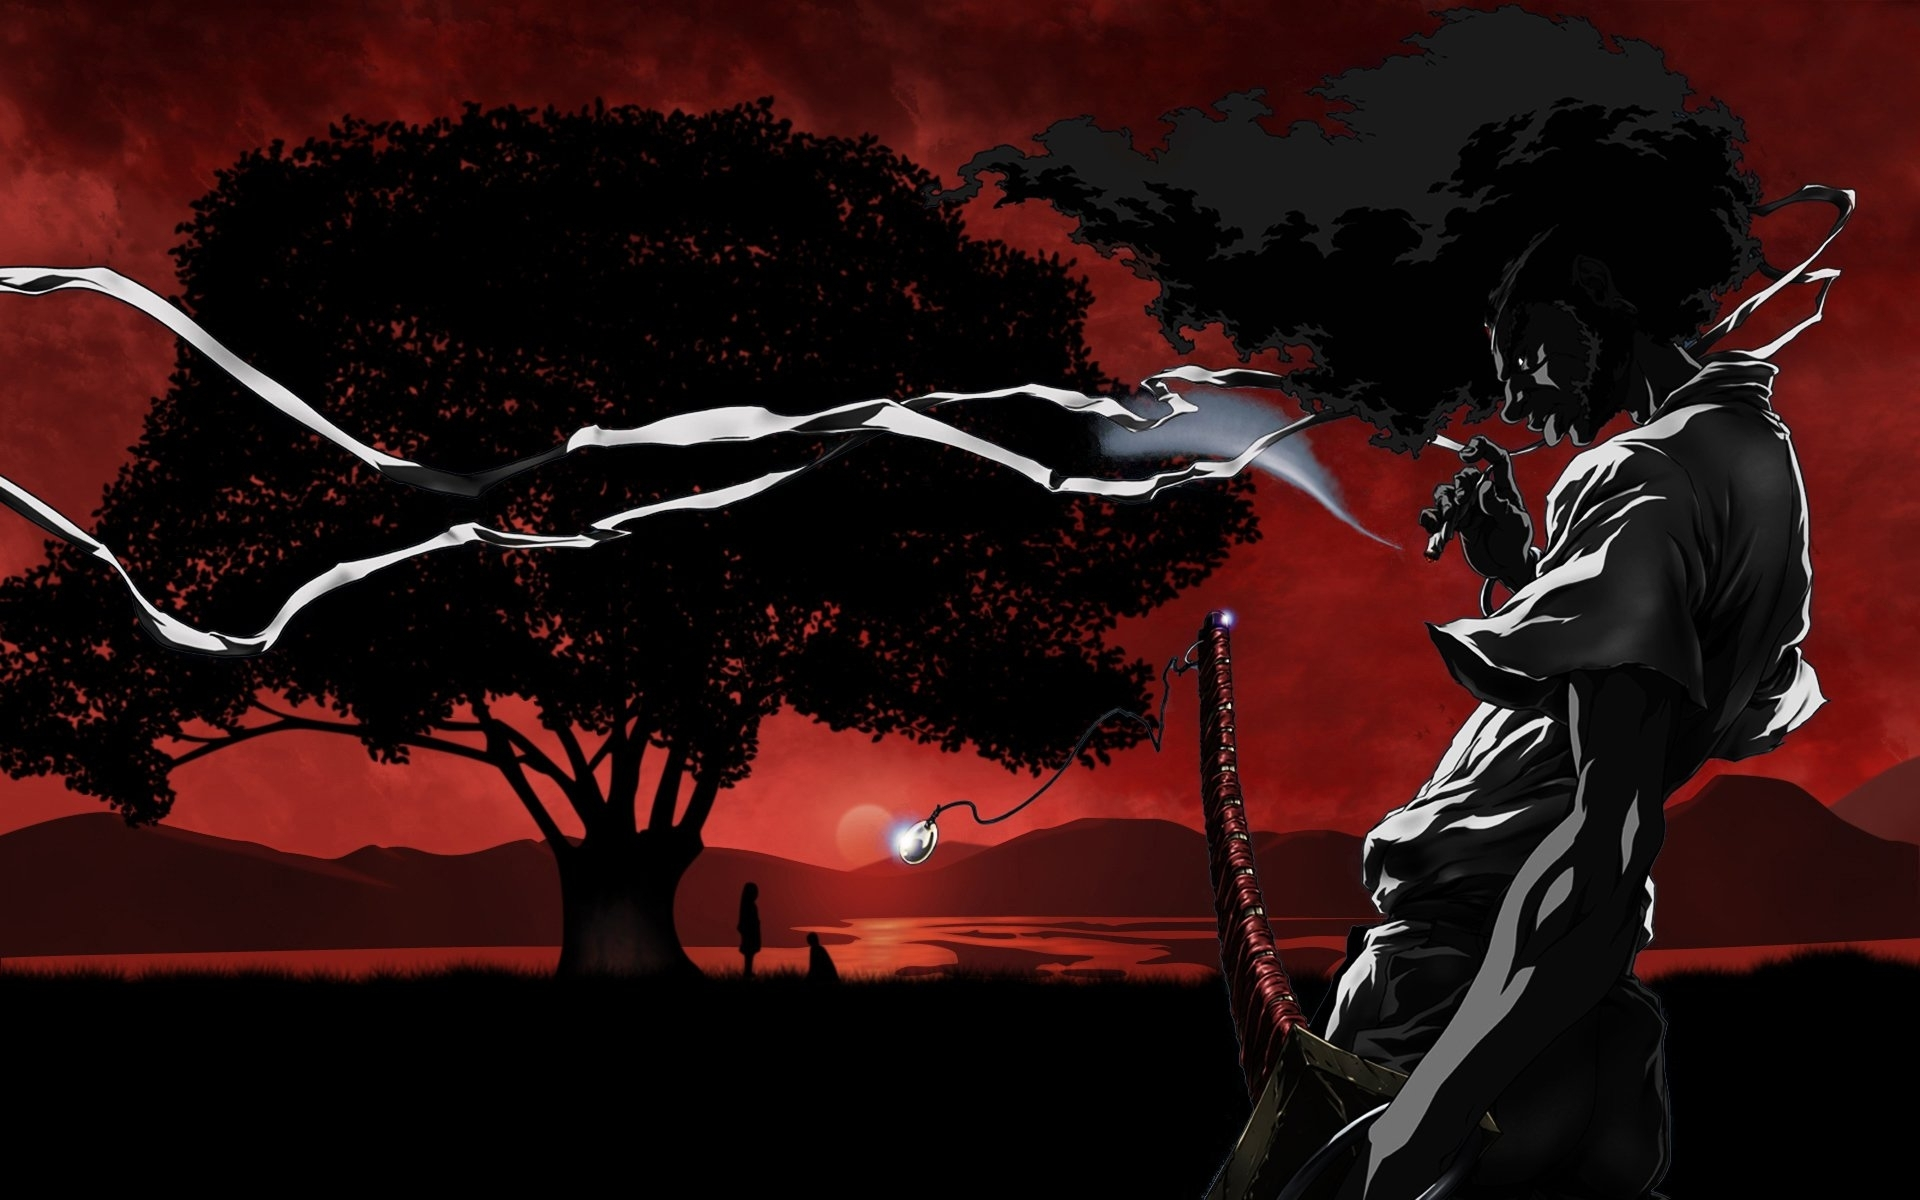 10 Top Afro Samurai Wallpaper 1920X1080 FULL HD 1920×1080 For PC Background